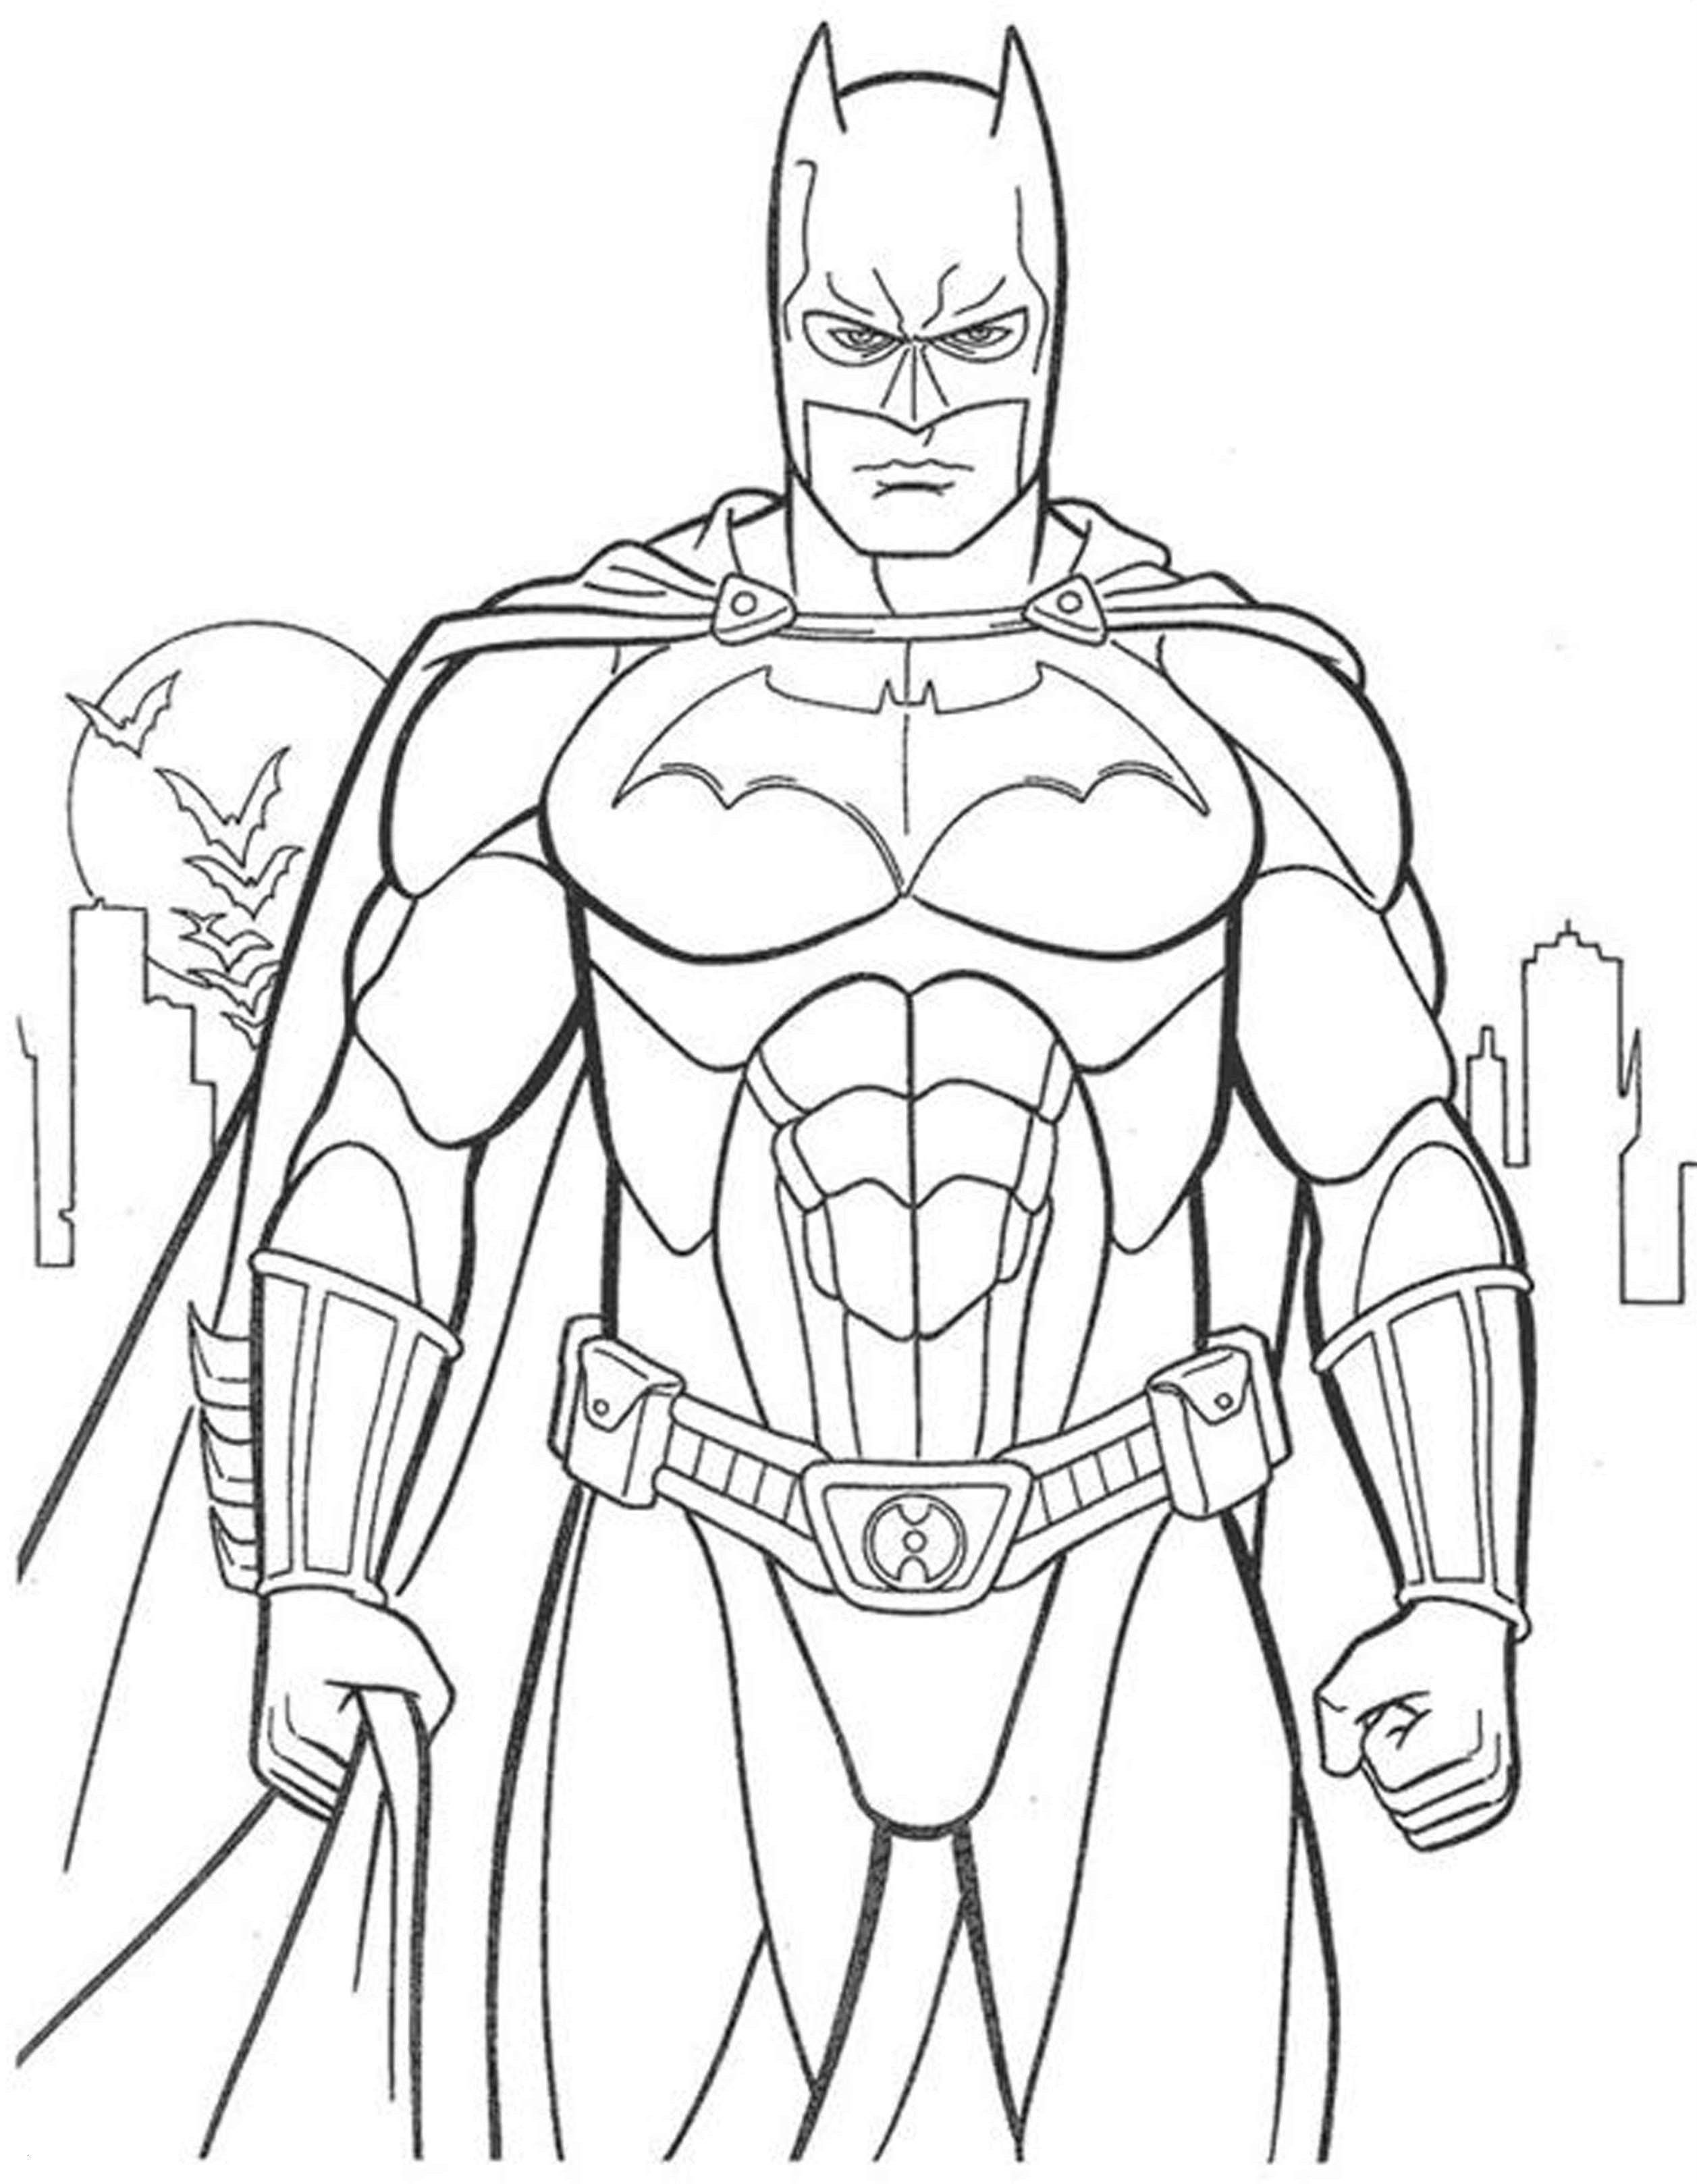 Justice League Coloring Pages New Lovely Coloring Pages Justice League Superman Coloring Pages Batman Coloring Pages Superhero Coloring Pages